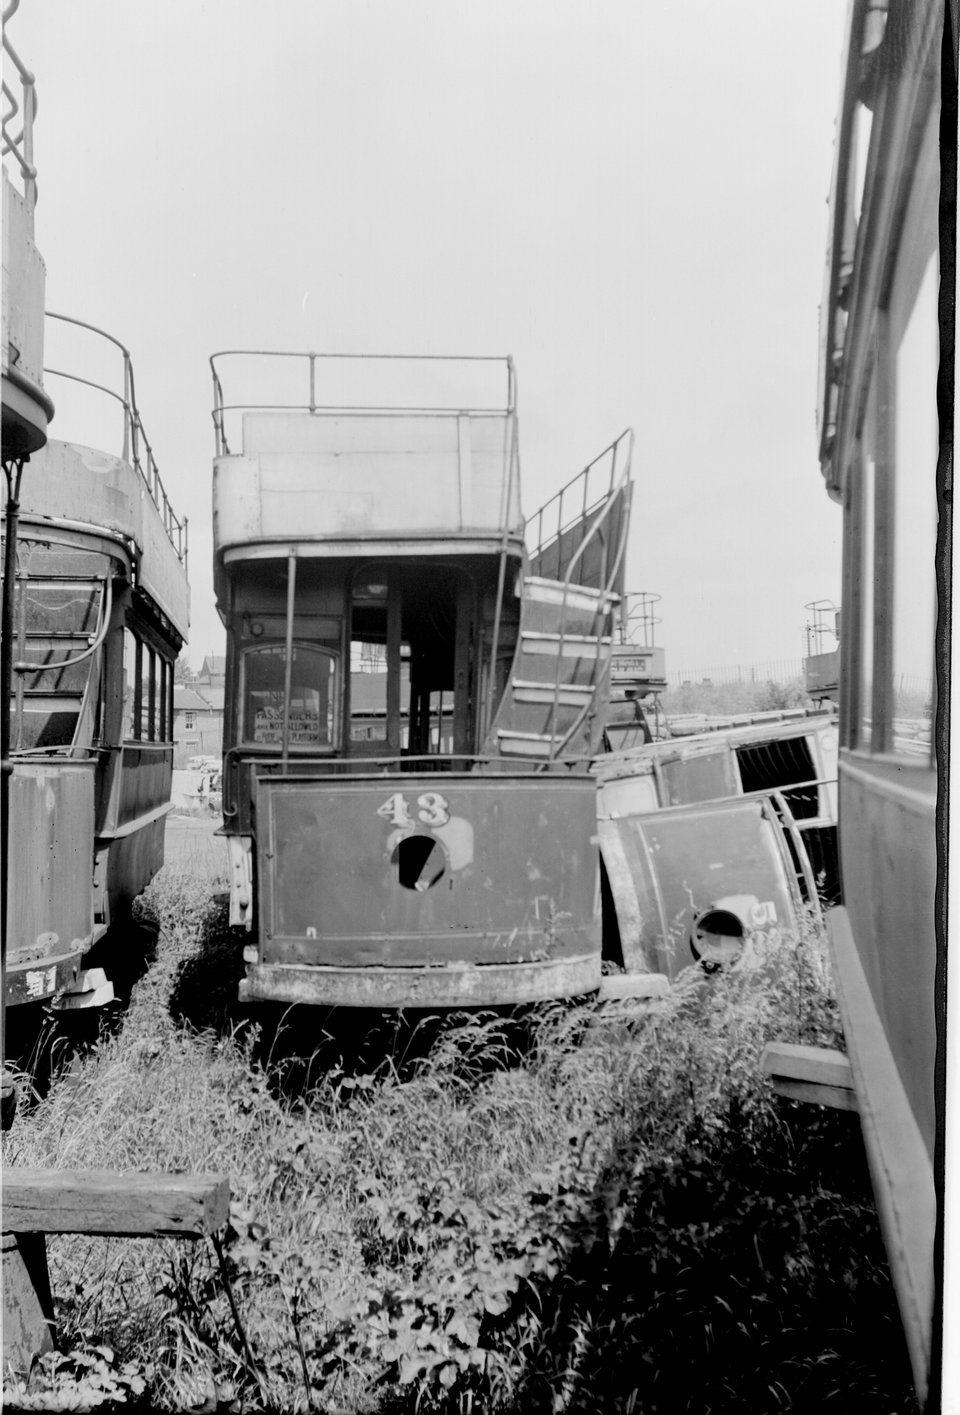 Sister car 43 in St Dennys scrap yard, Southampton; an all too common fate for most of Britain's remaining tramcars after the war. H.B. Priestley, 11/6/1949